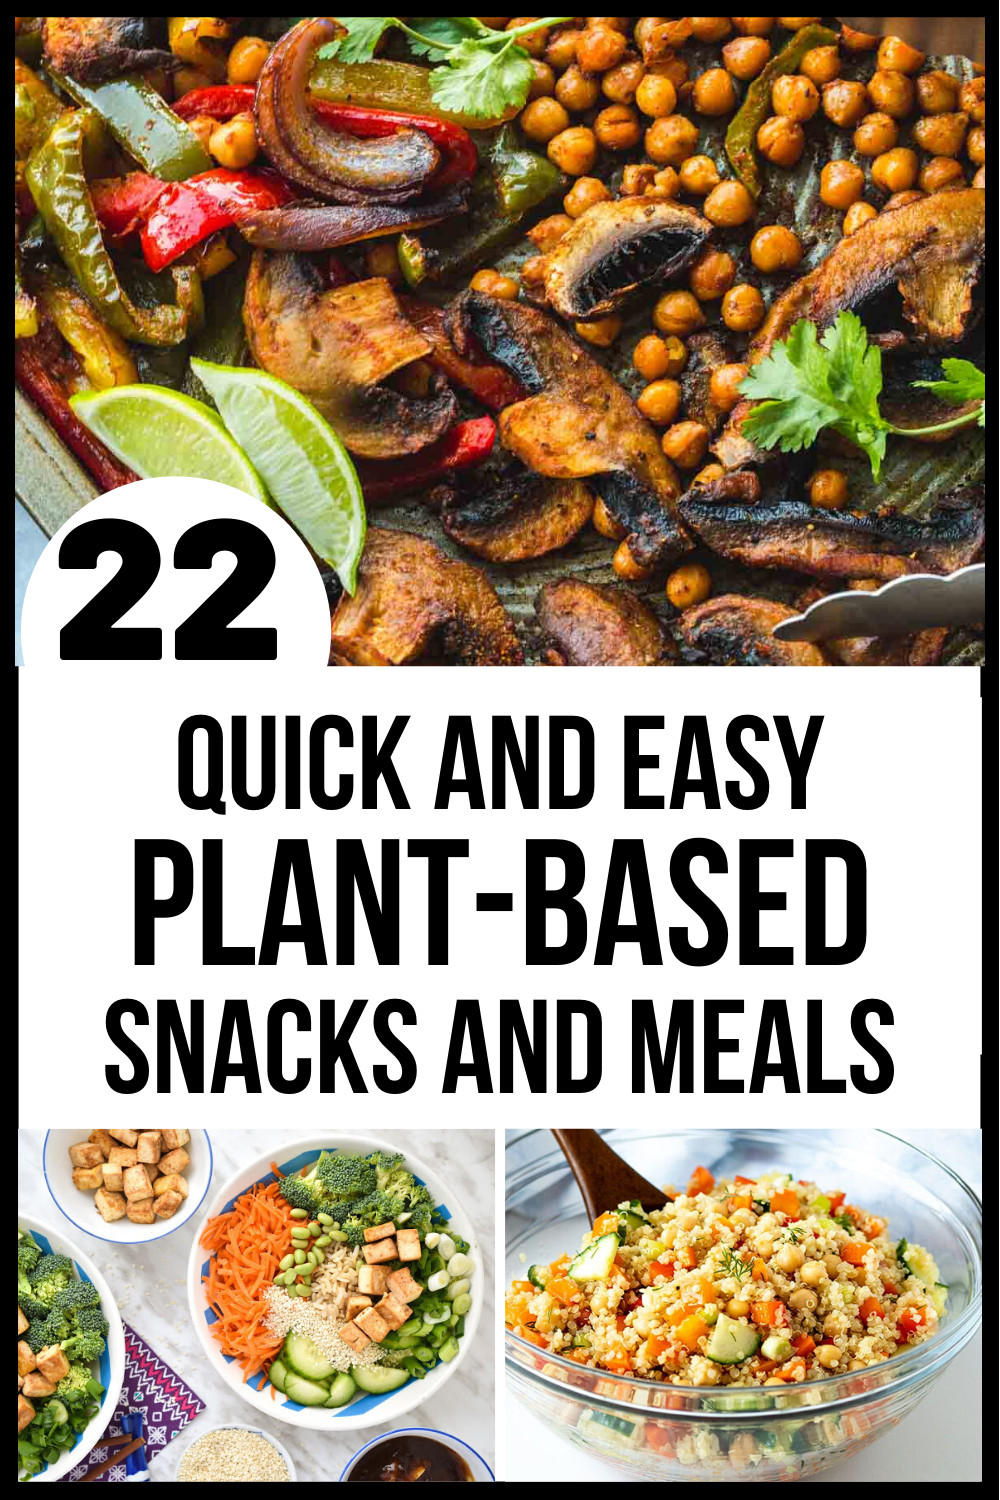 Quick Plant Based Recipes  Quick Plant Based Meals and Snacks